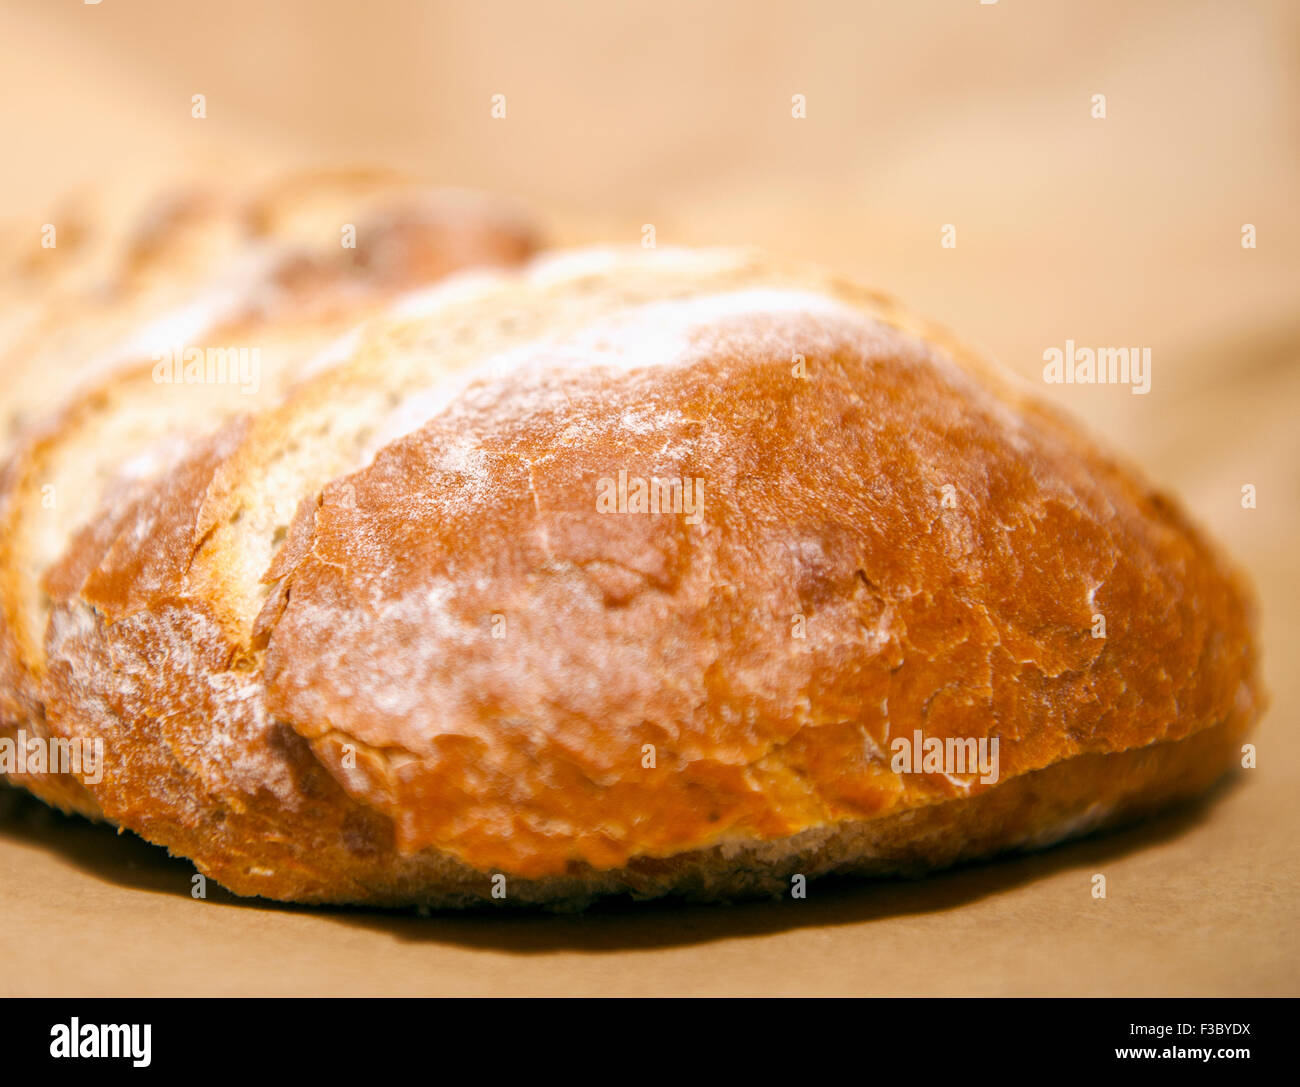 Close-up view of sliced rustic bread loaf - Stock Image